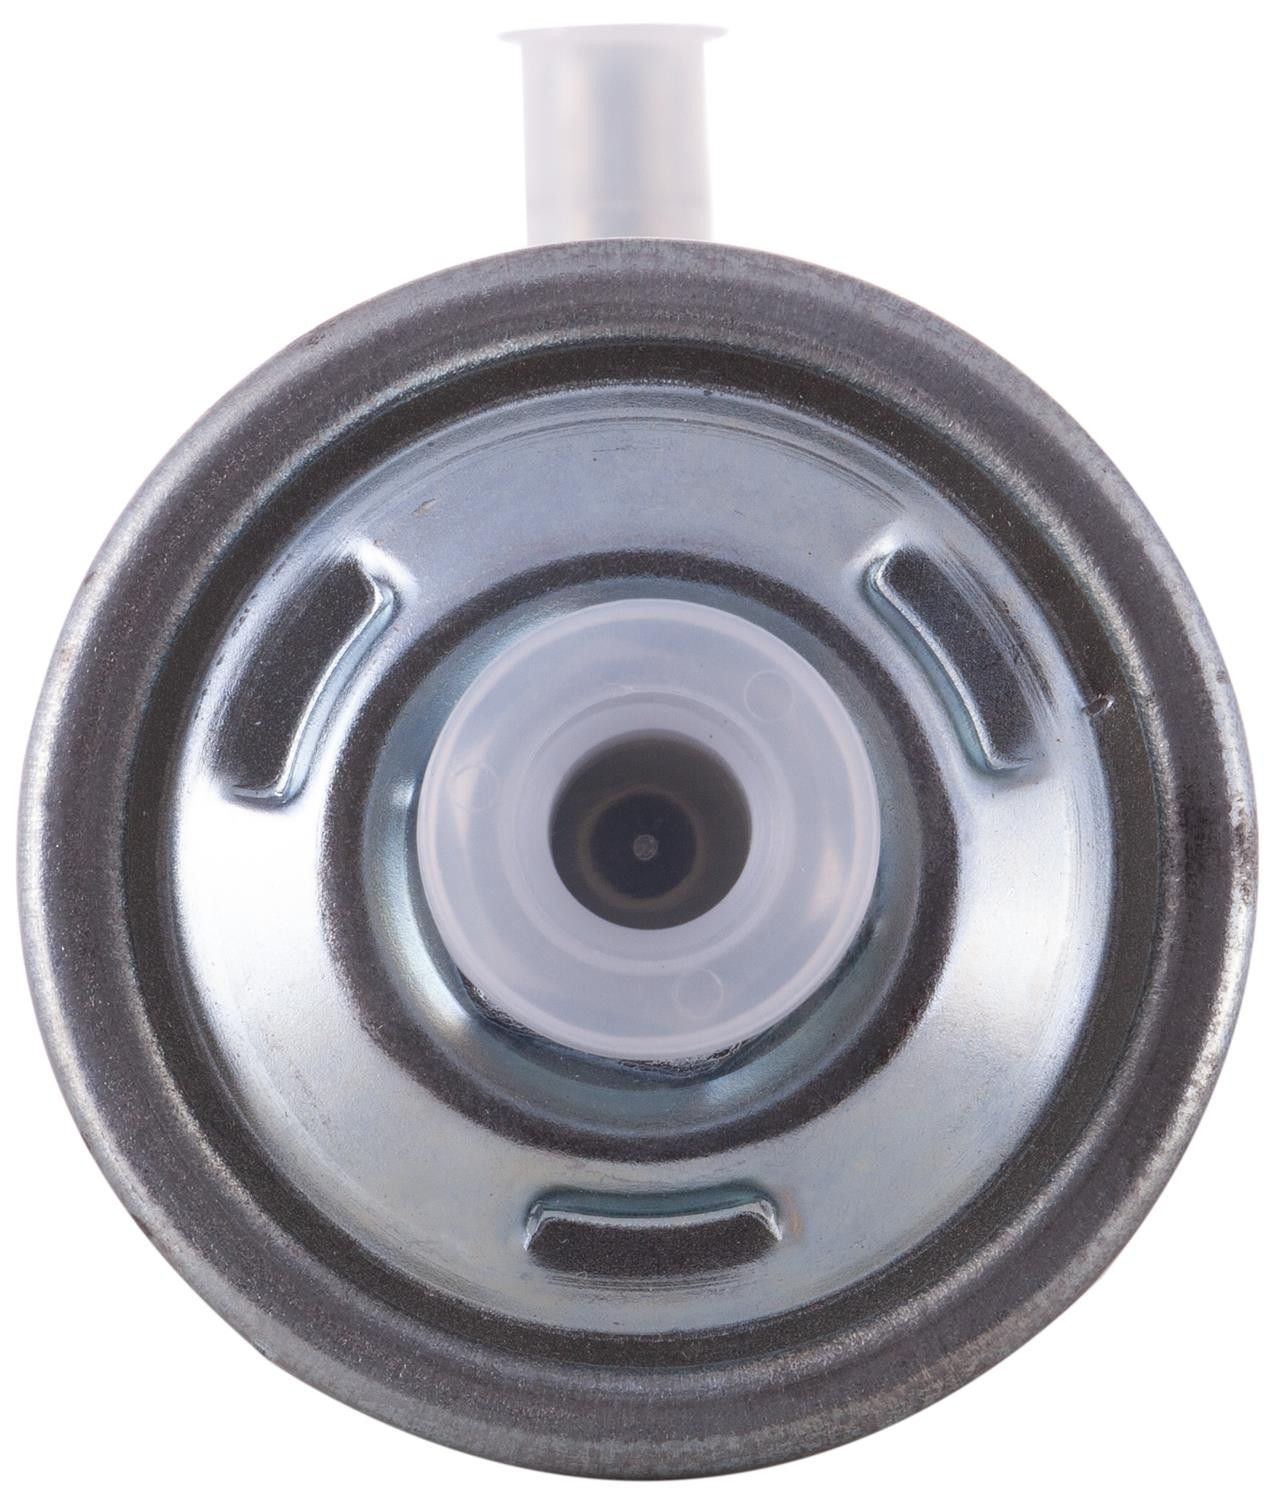 Toyota Camry Fuel Filter Replacement Beck Arnley Fram Hastings 99 1998 6 Cyl 30l Premium Guard Pf5287